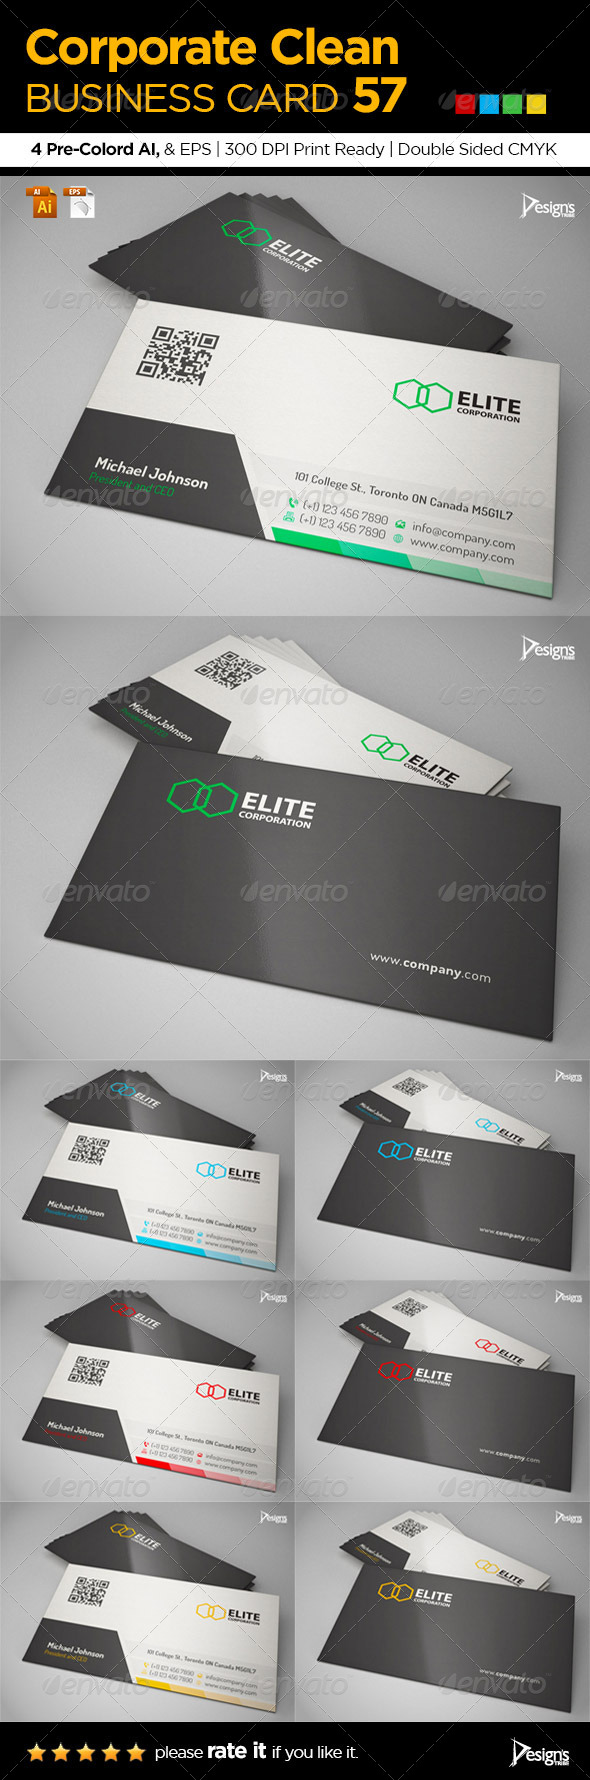 Corporate Clean Business Card 57 - Business Cards Print Templates